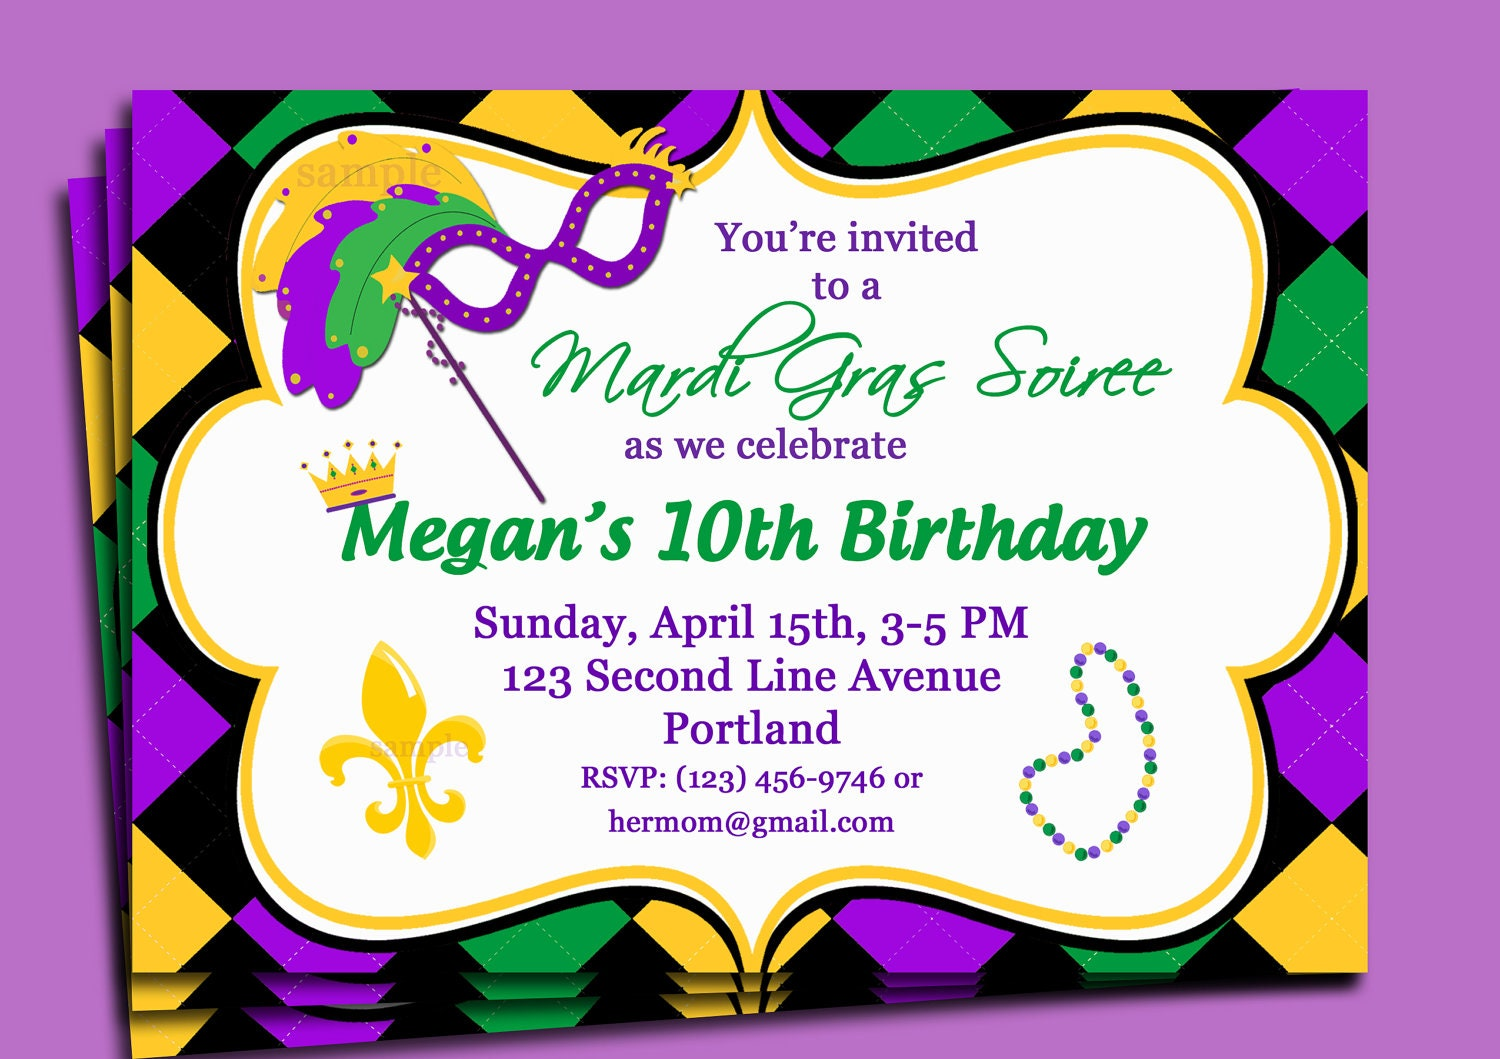 Sizzling image pertaining to free printable mardi gras invitations